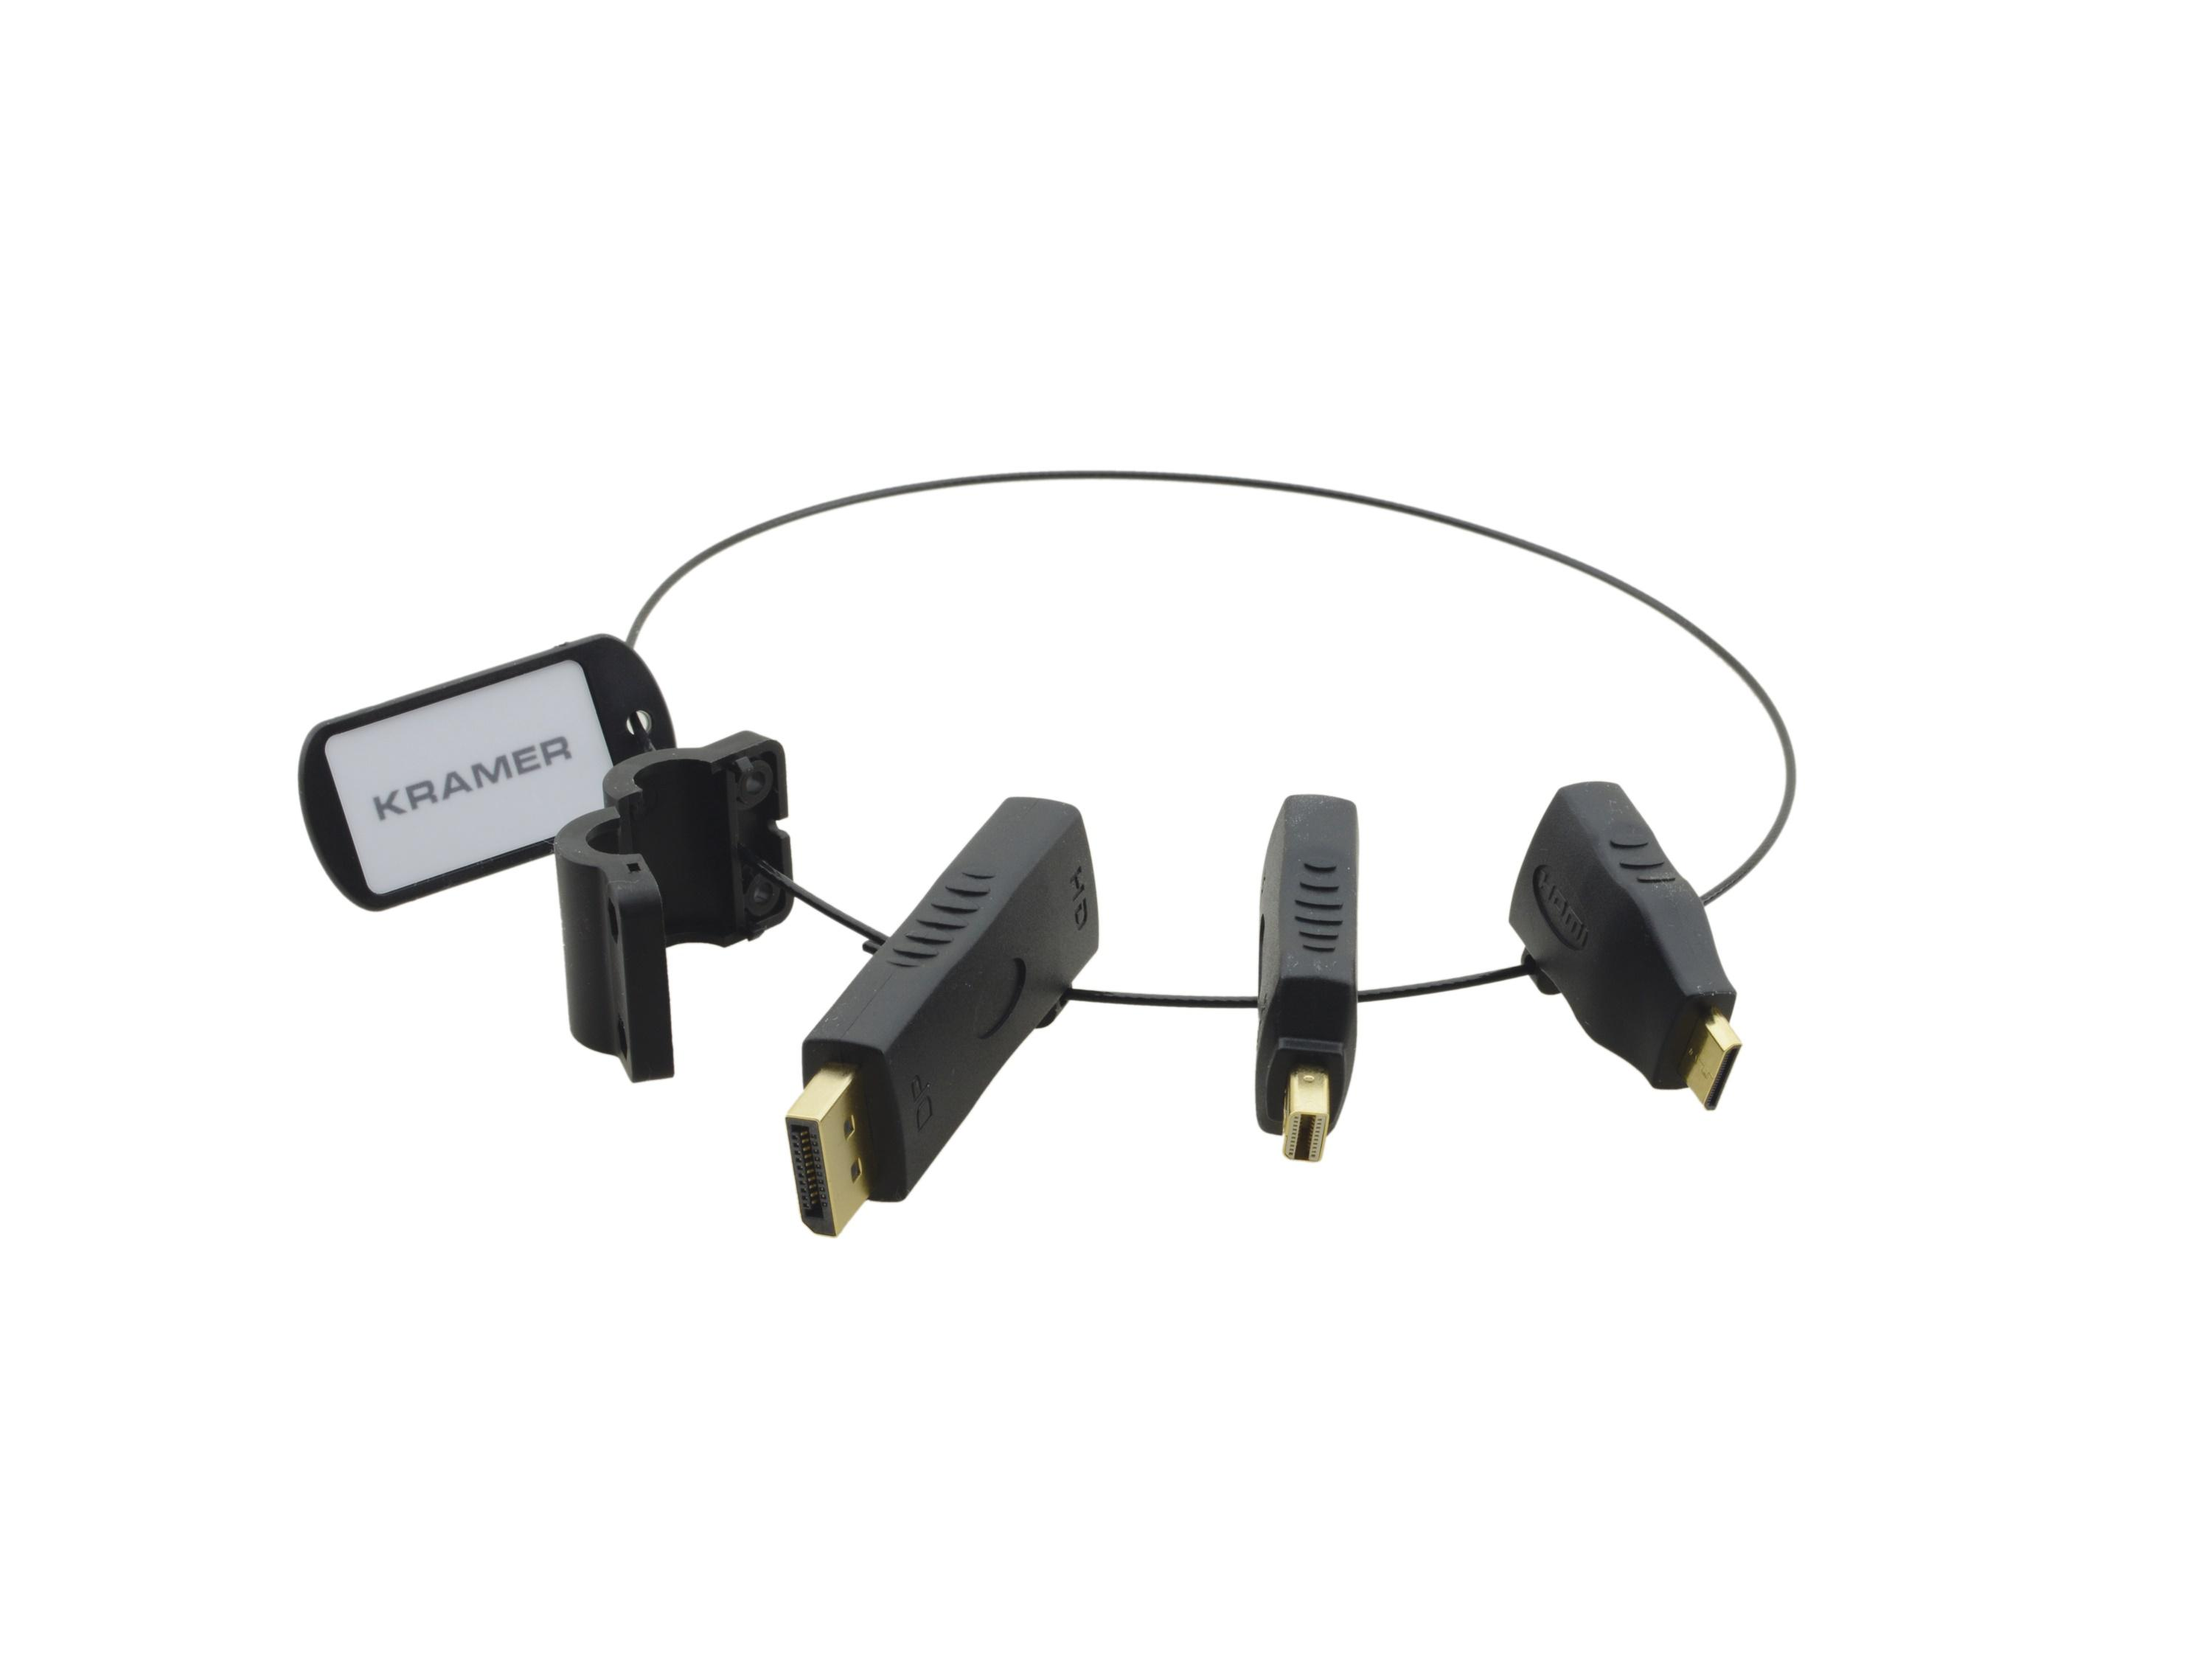 AD-RING-3 HDMI Adapter Ring - 3 by Kramer